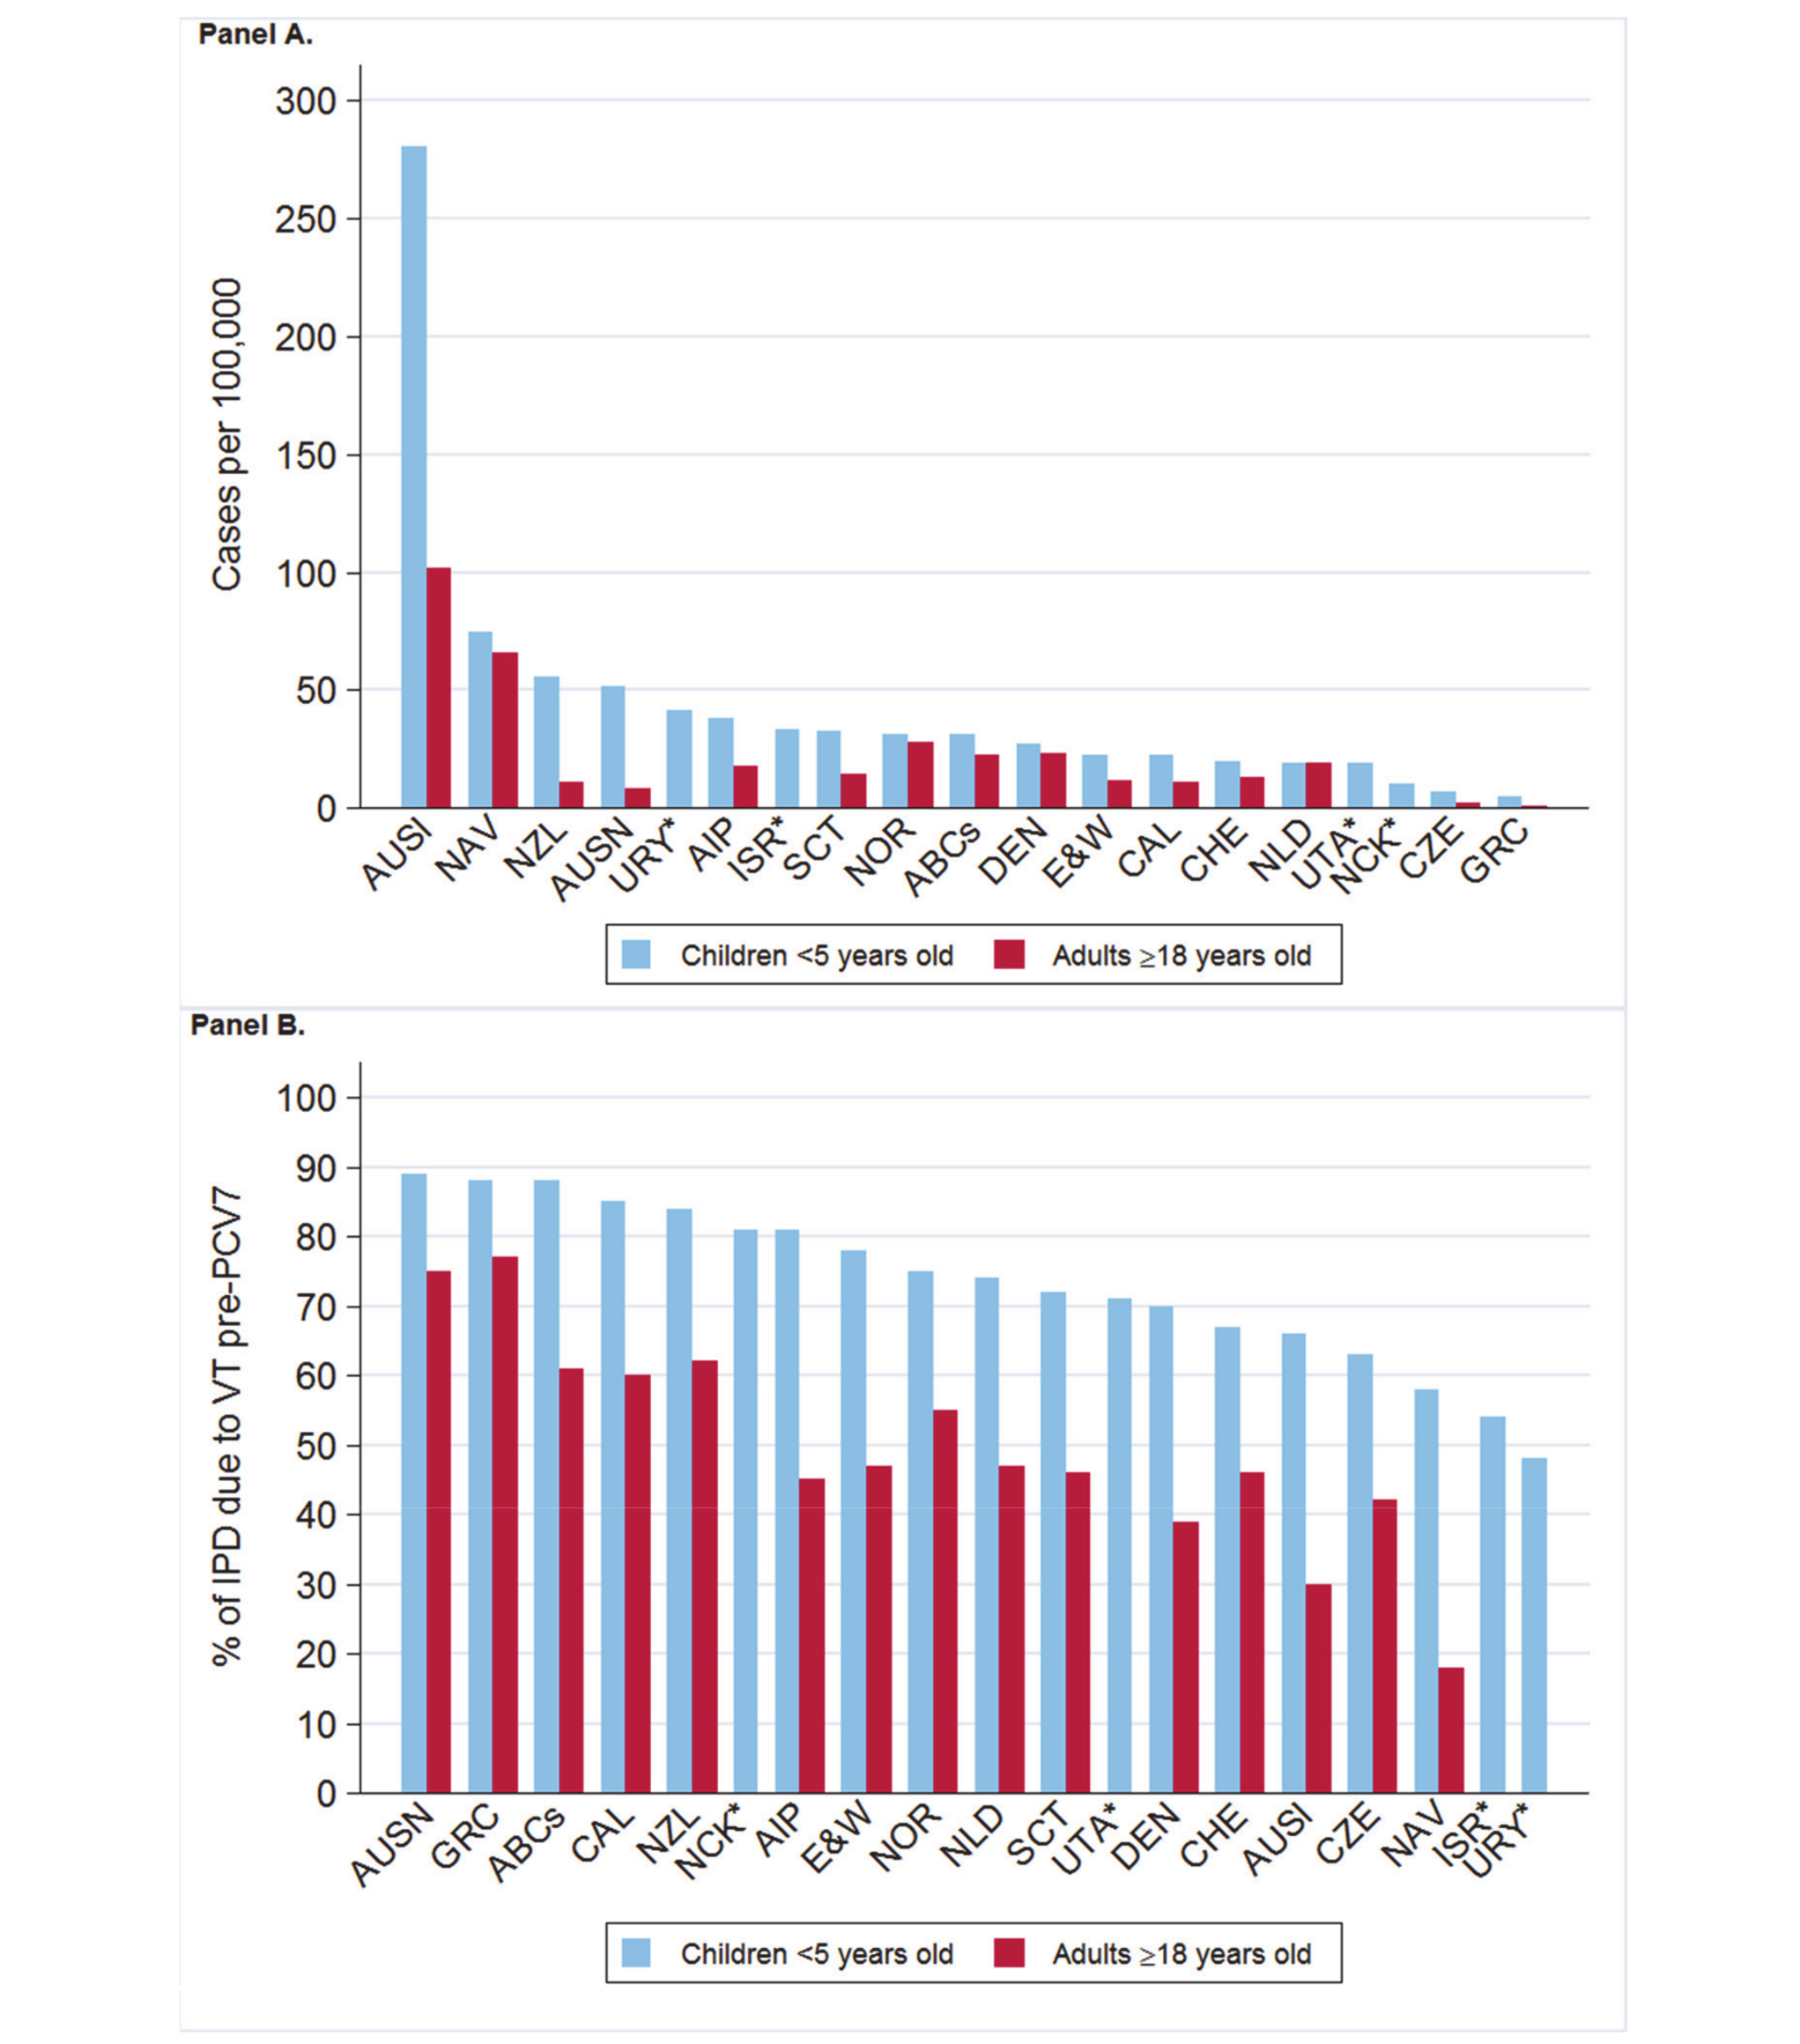 Pre-PCV7 introduction average annual invasive pneumococcal disease rates and percent vaccine serotype isolates.